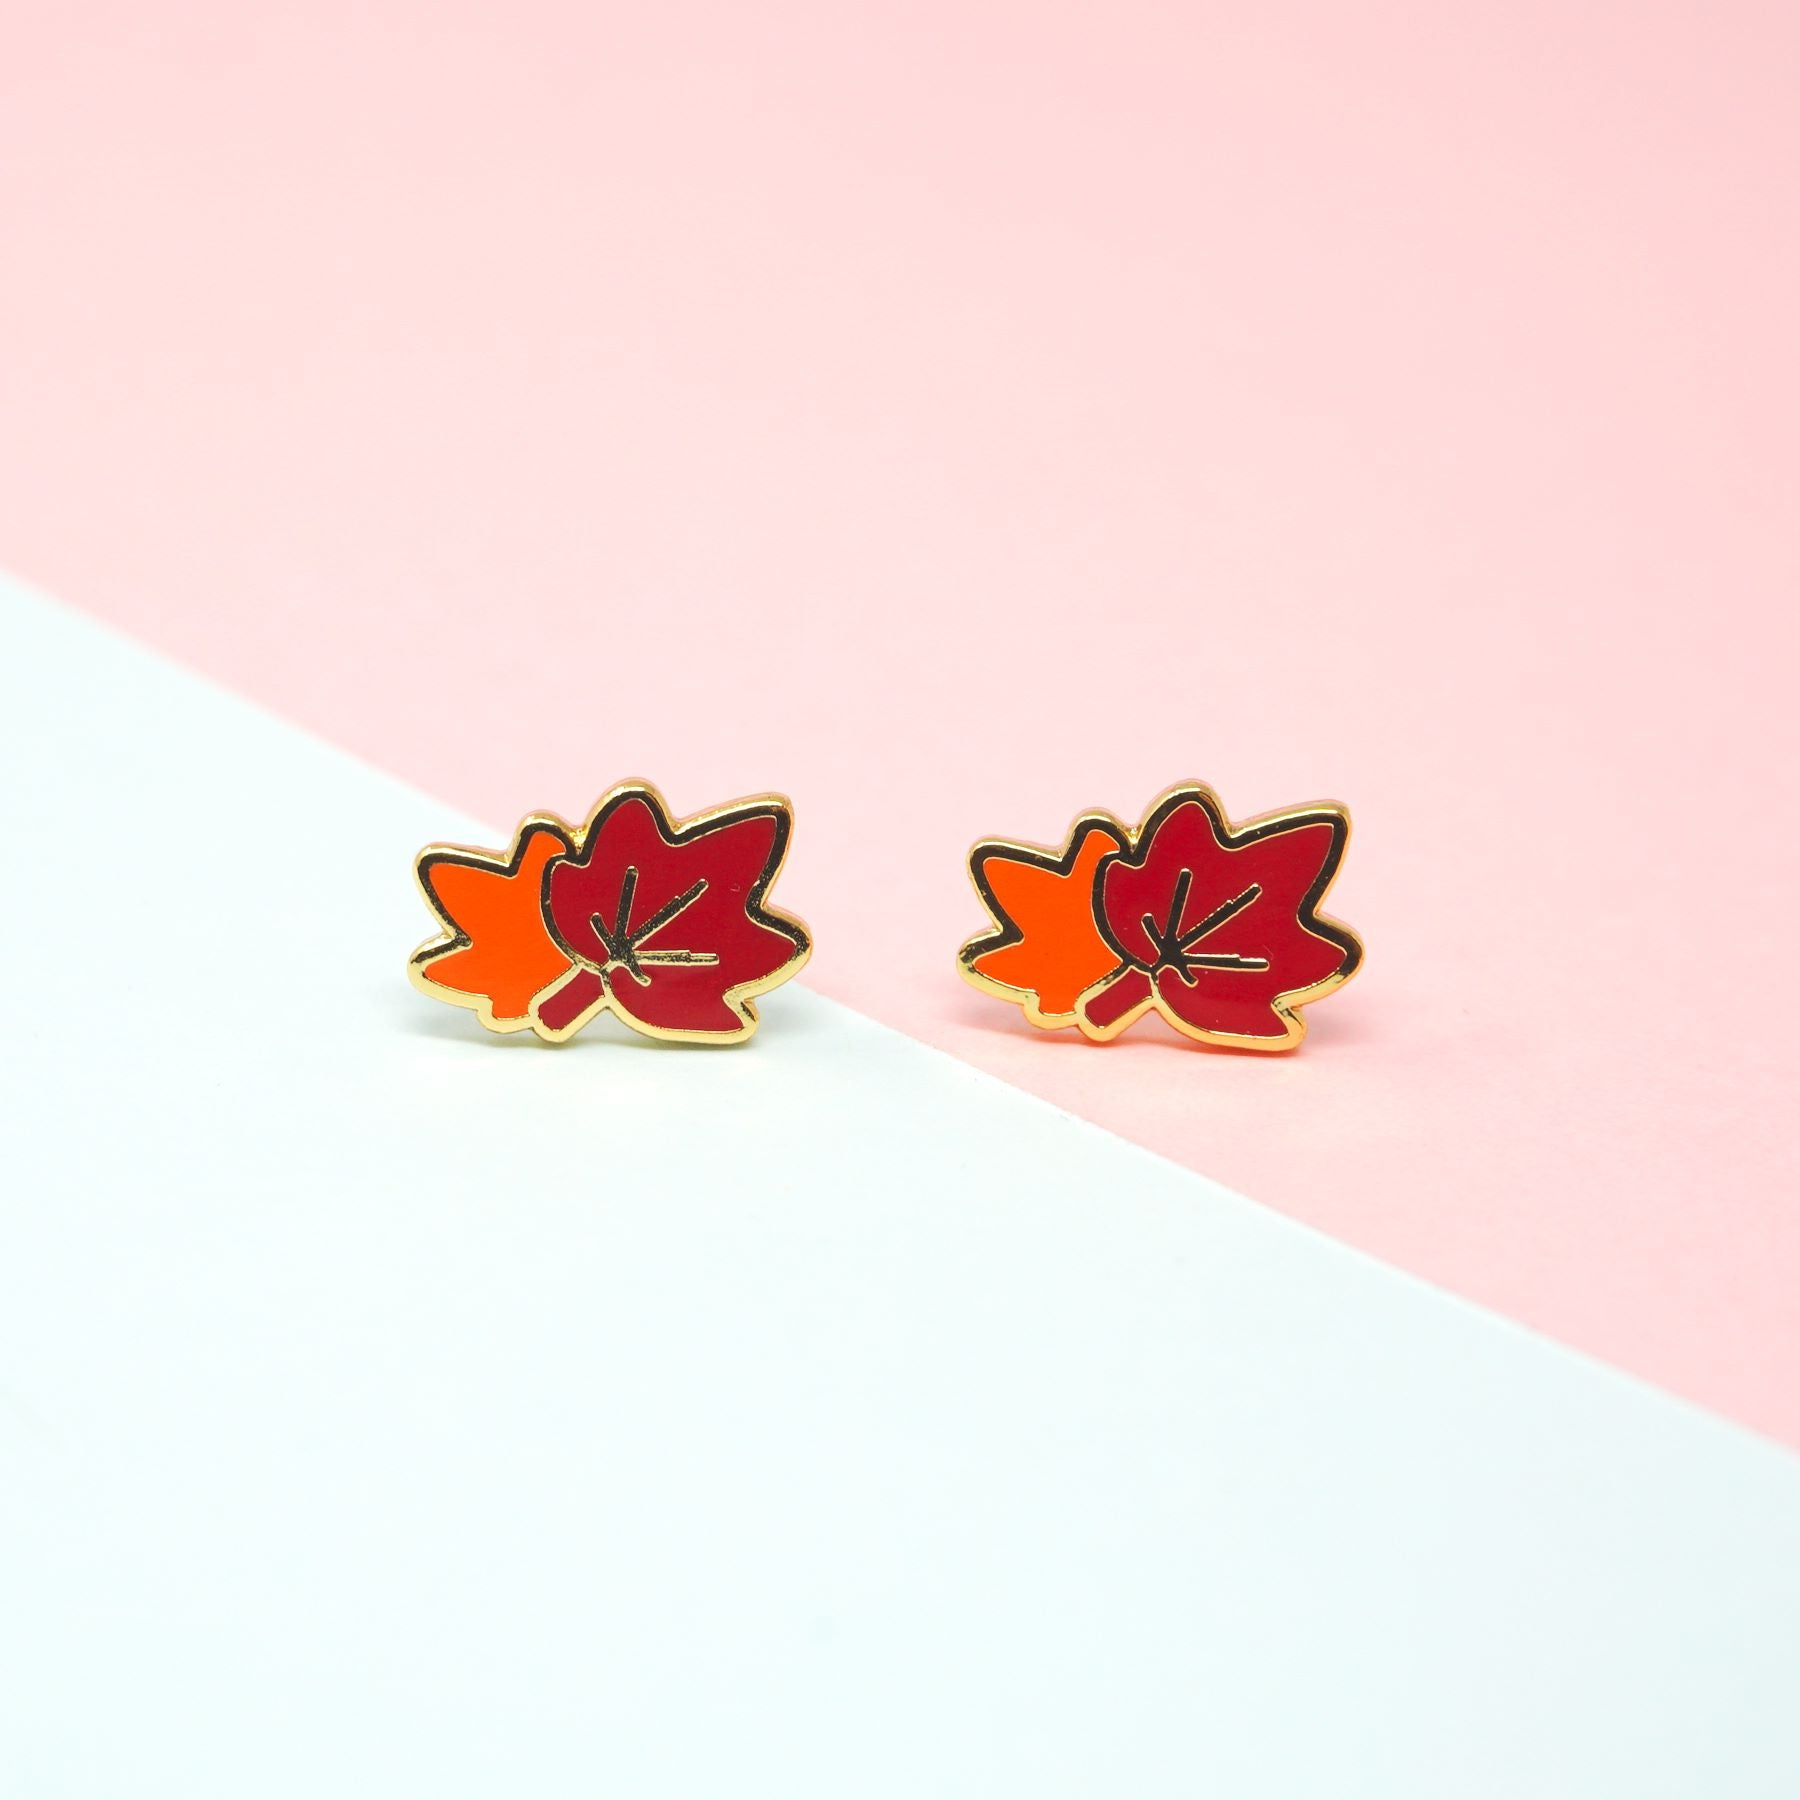 Miss Modi presents Handcrafted Maple Leaves Enamel Stud Earrings